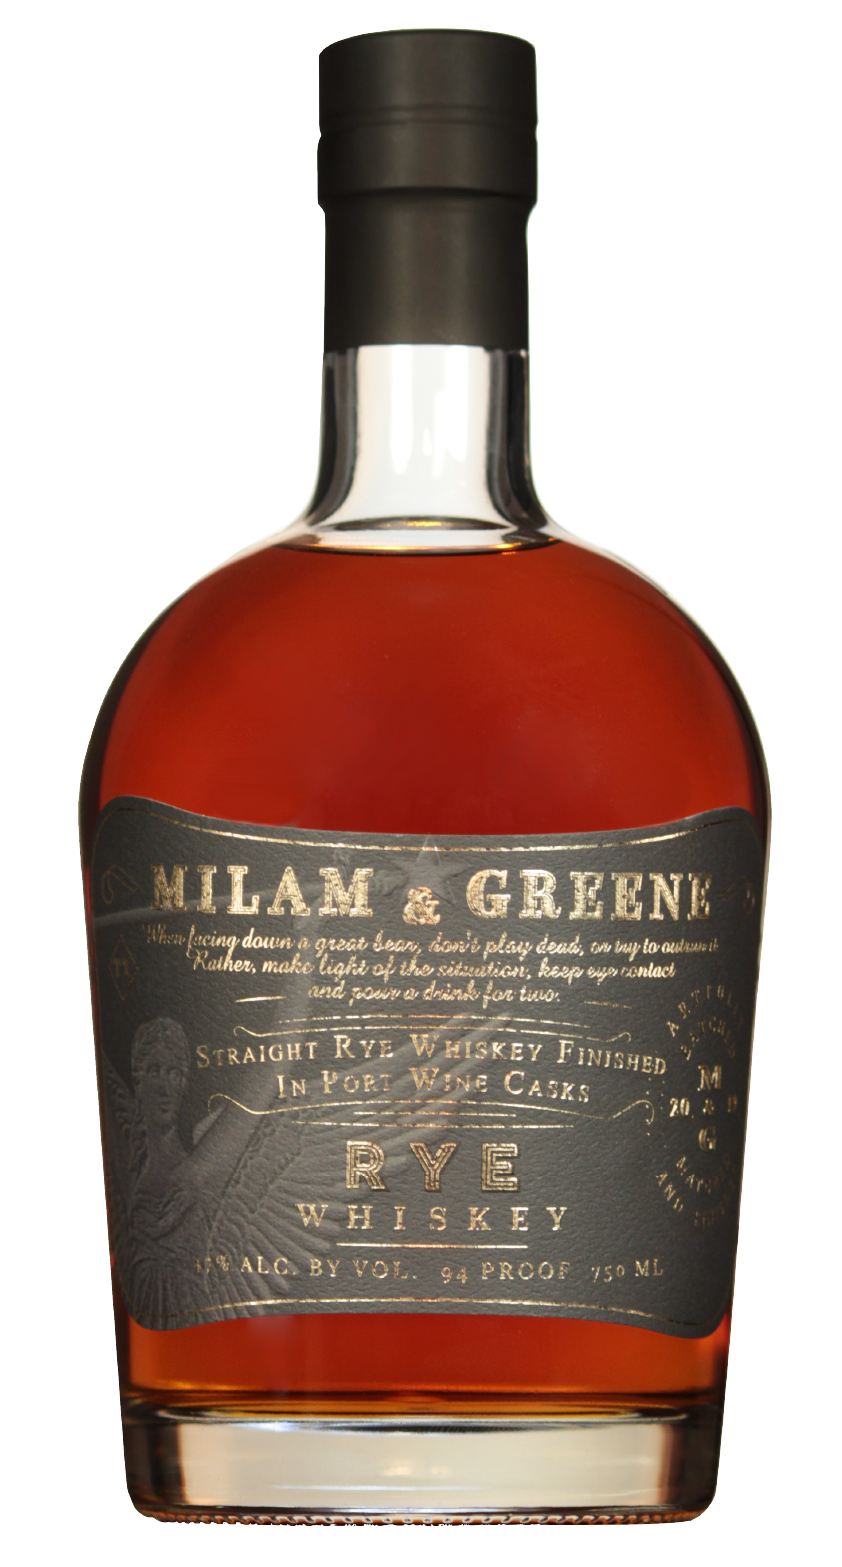 Milam & Greene Straight Rye Whiskey (Port Finish) 750ml